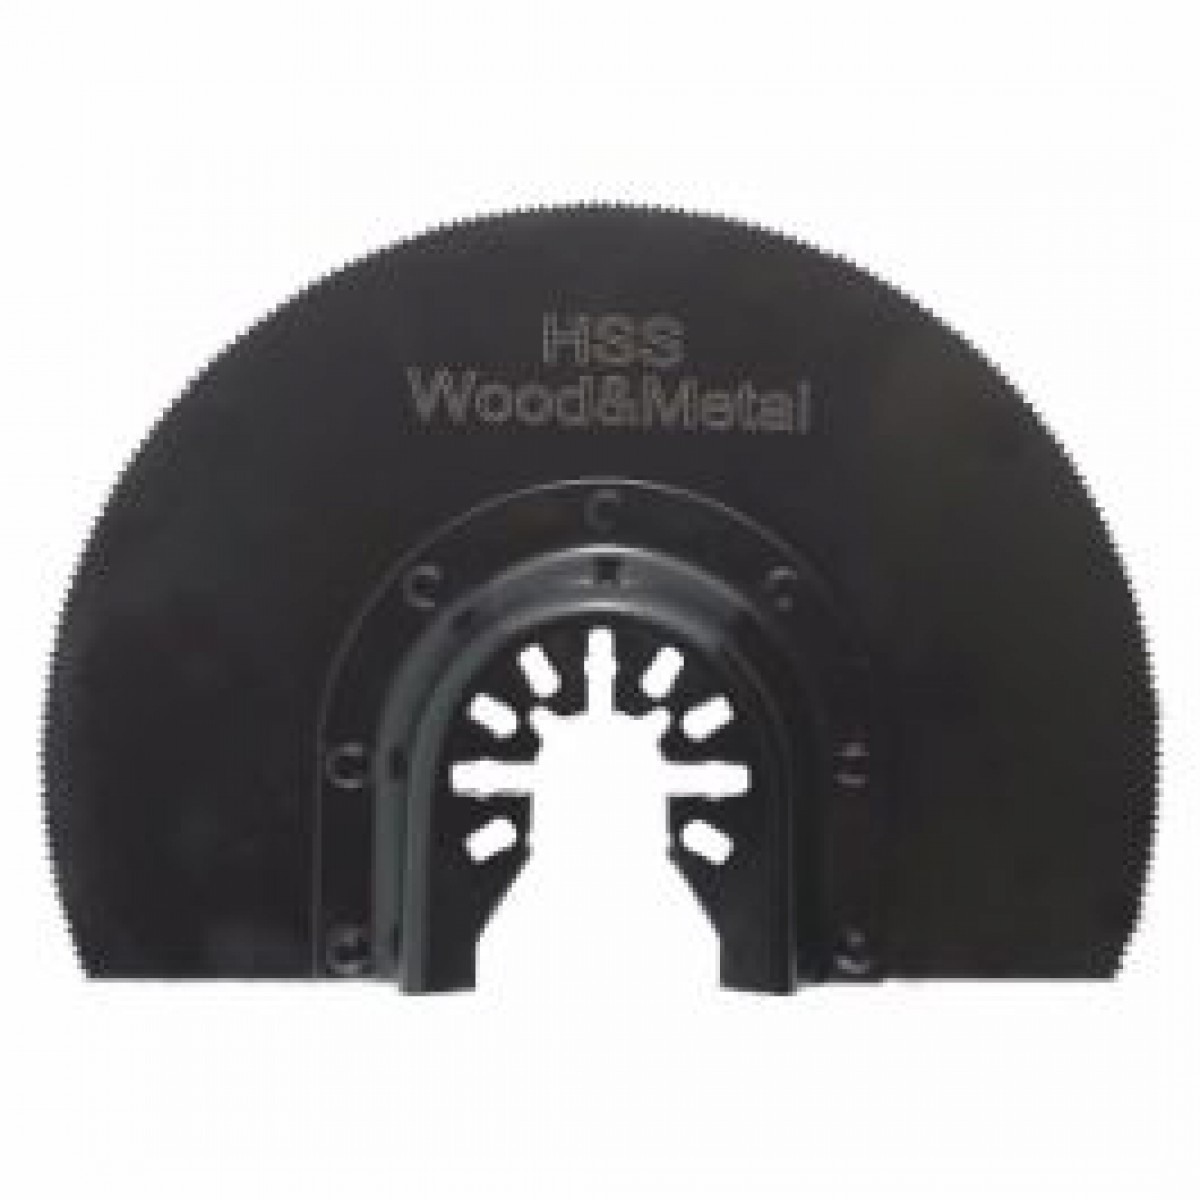 Makita 3.5 inch Segmented Saw Blade Oscillating Multi Tool Wood Plunge Cutting